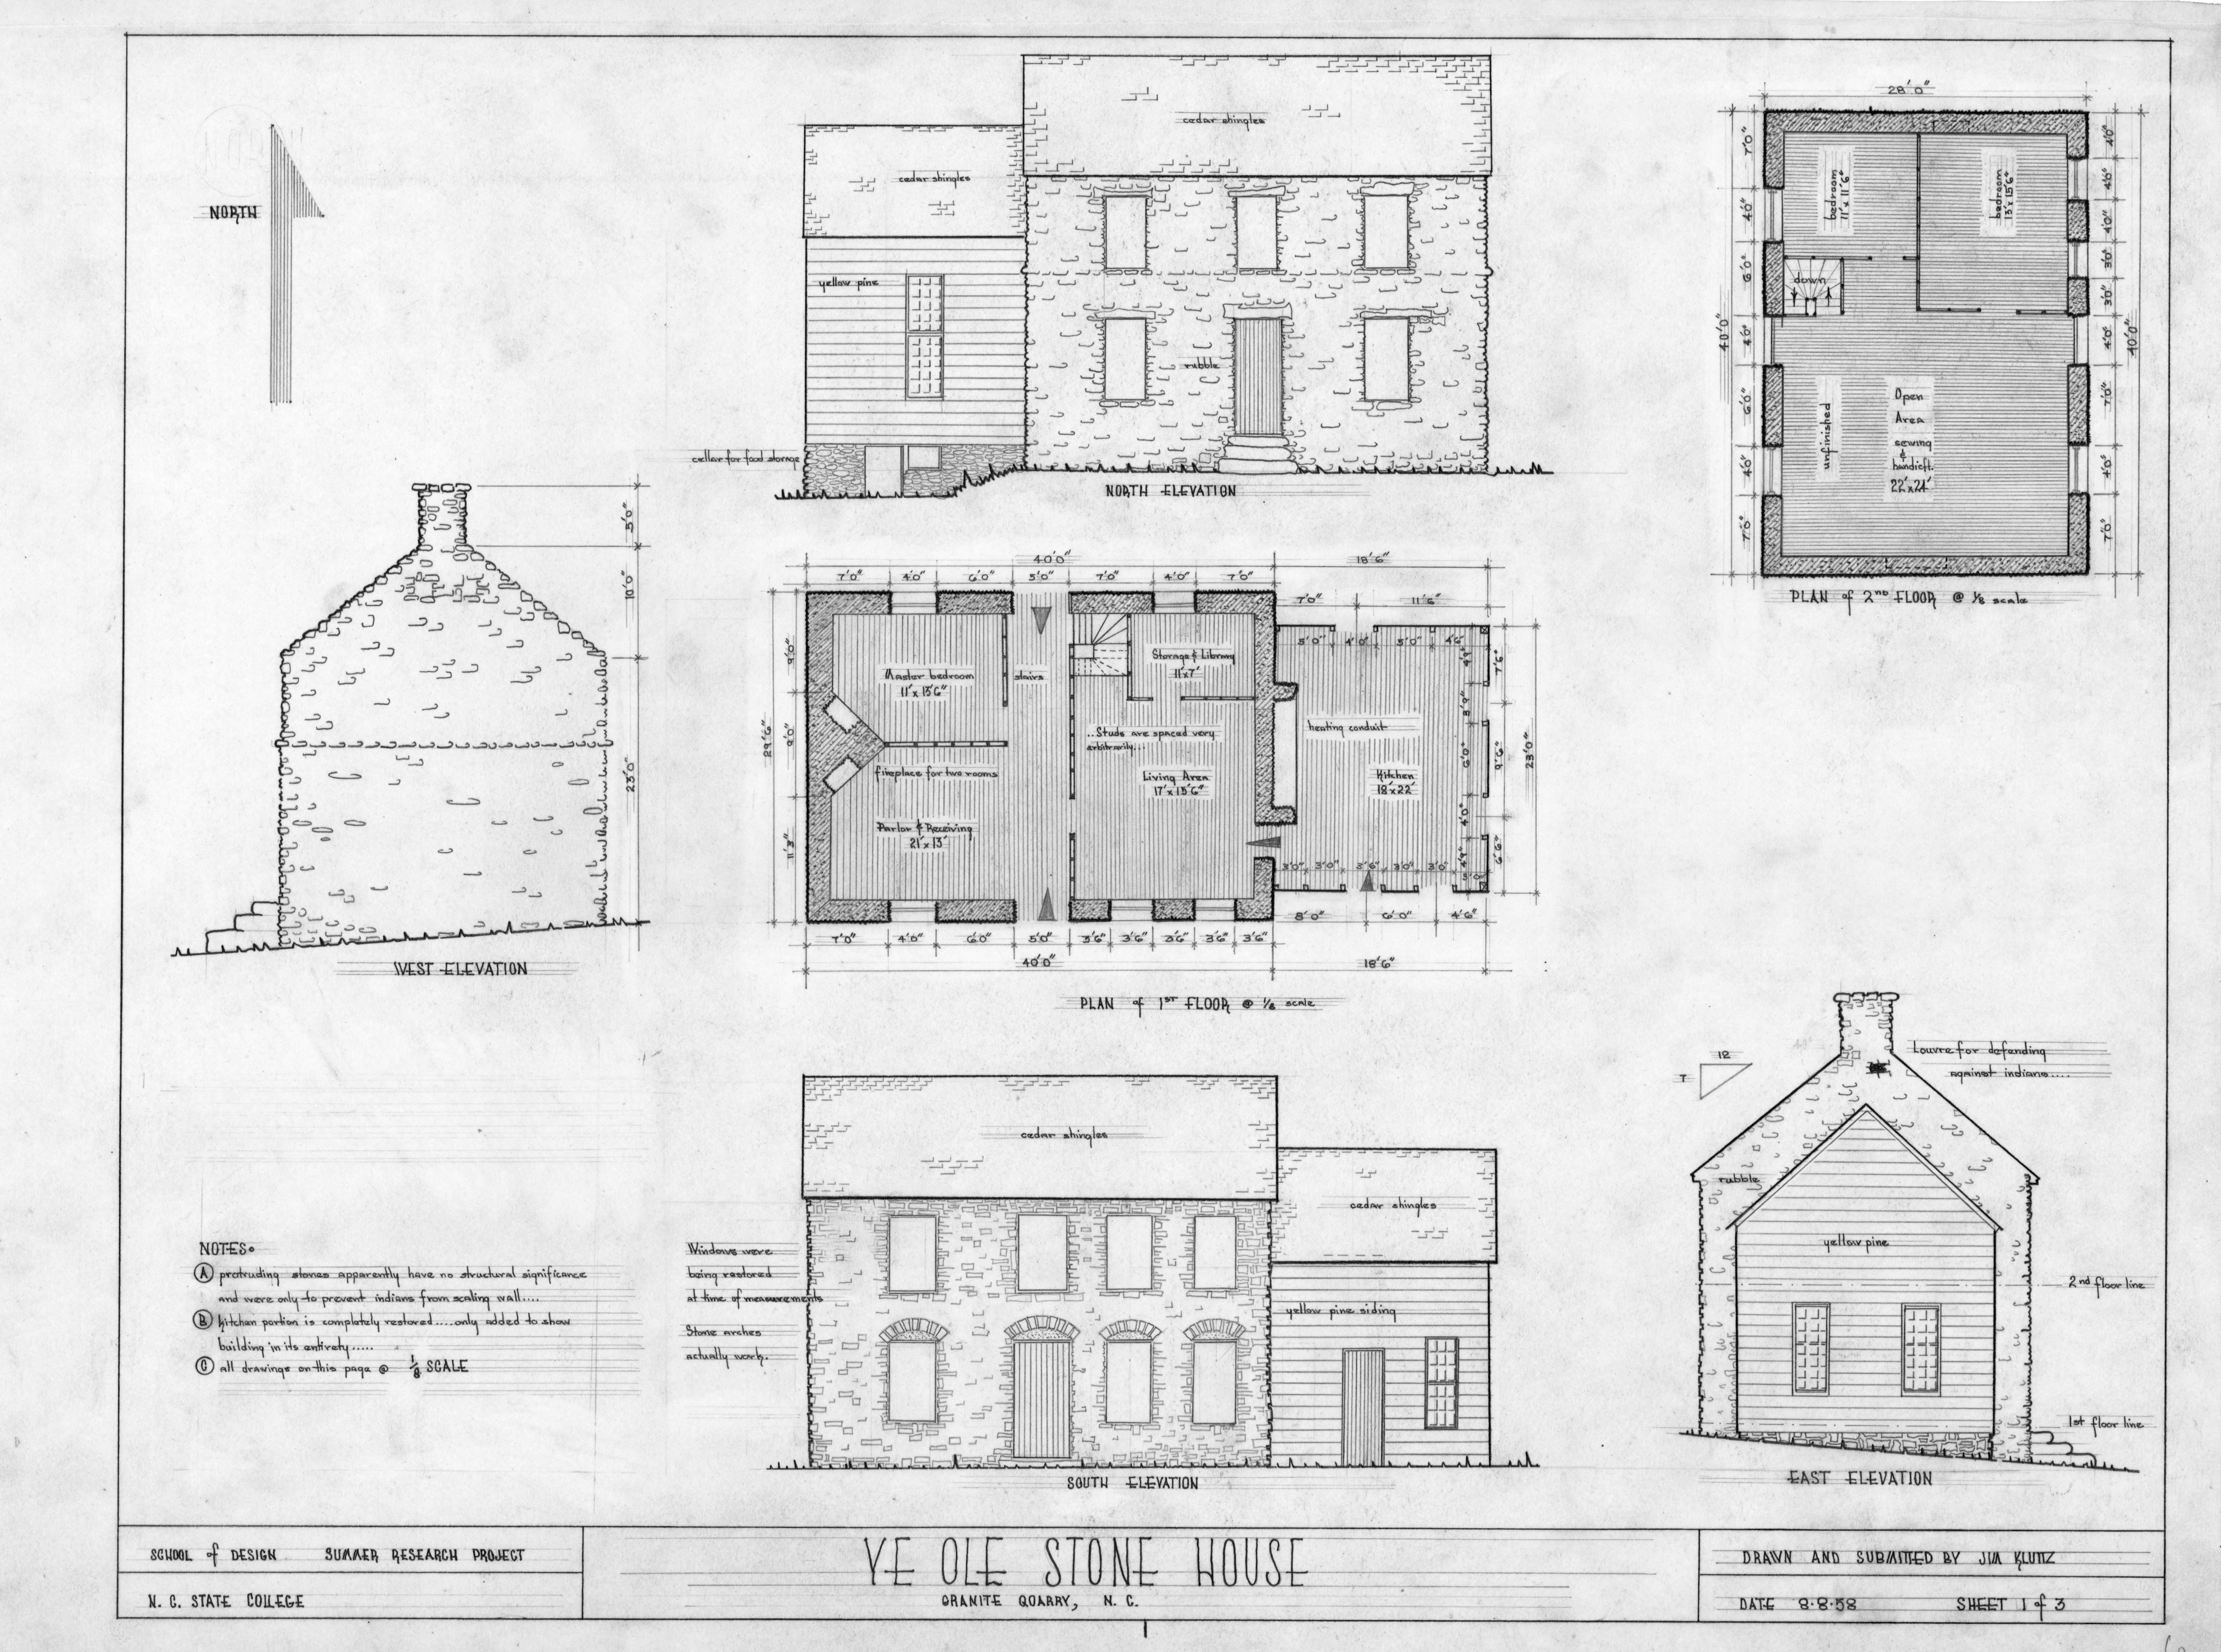 Elevation Plan Notes : Floor plans elevations and notes michael braun house